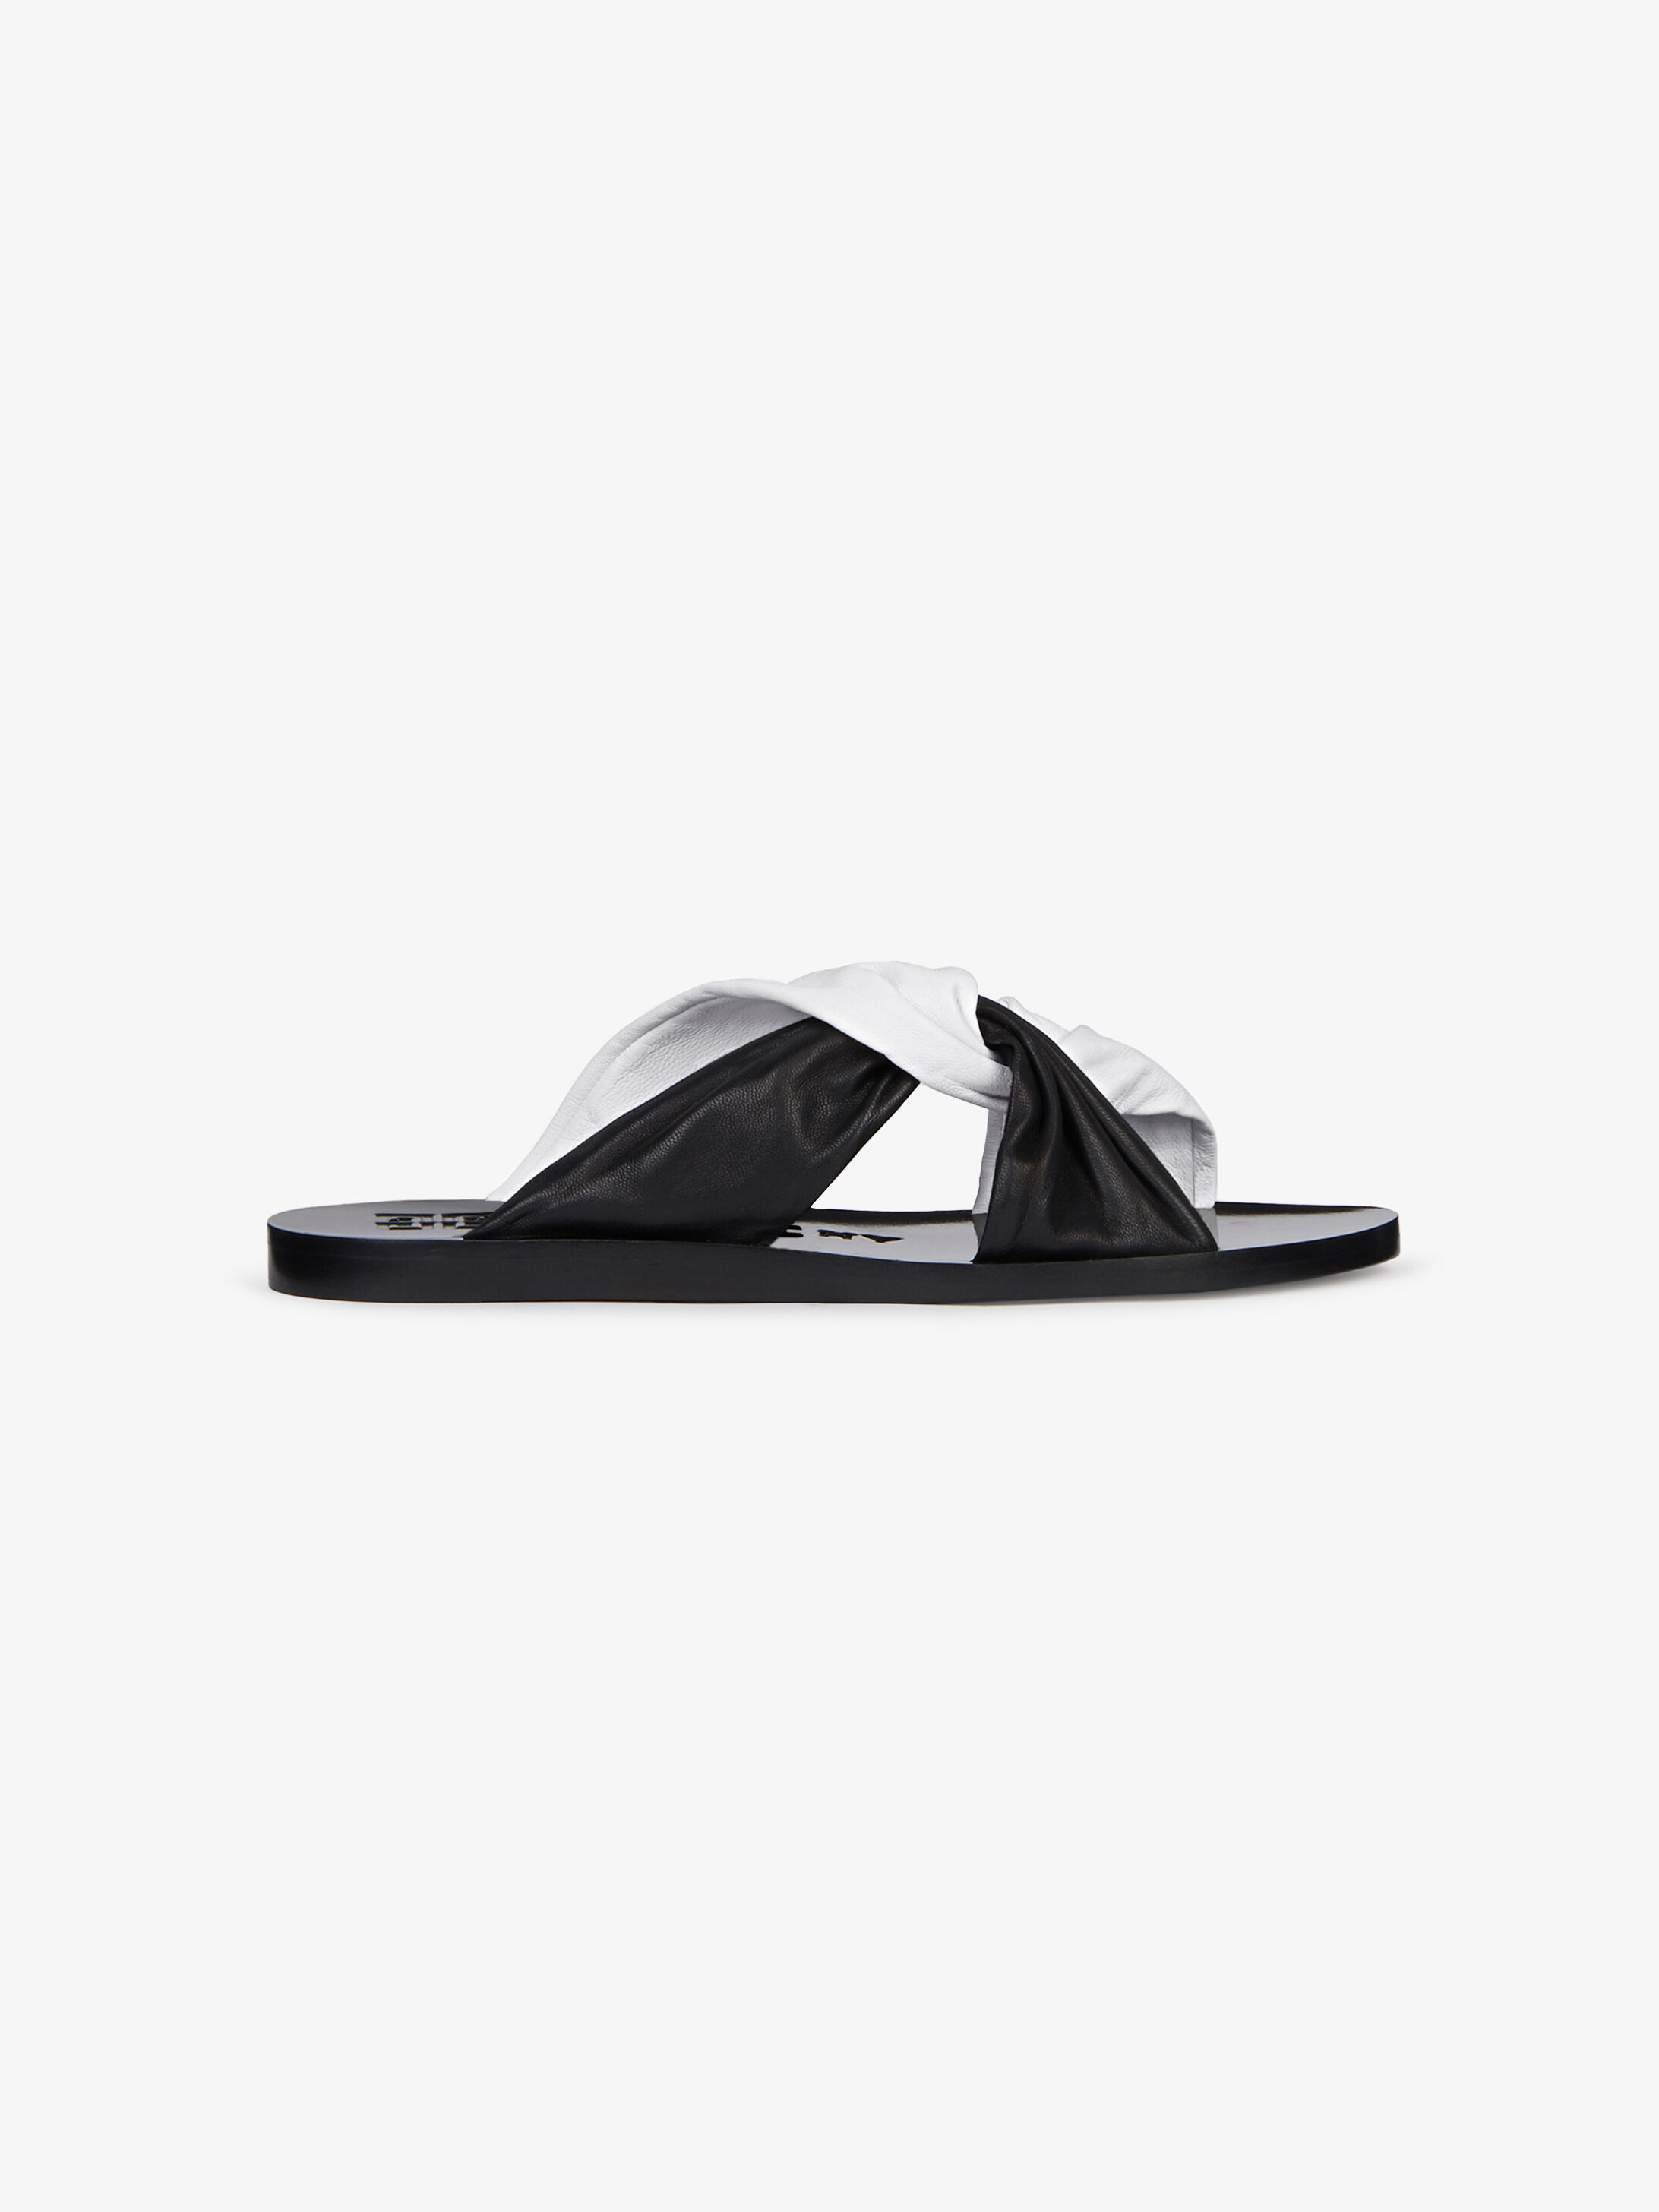 0acedd336271 Women s Ballerinas and Flats collection by Givenchy.